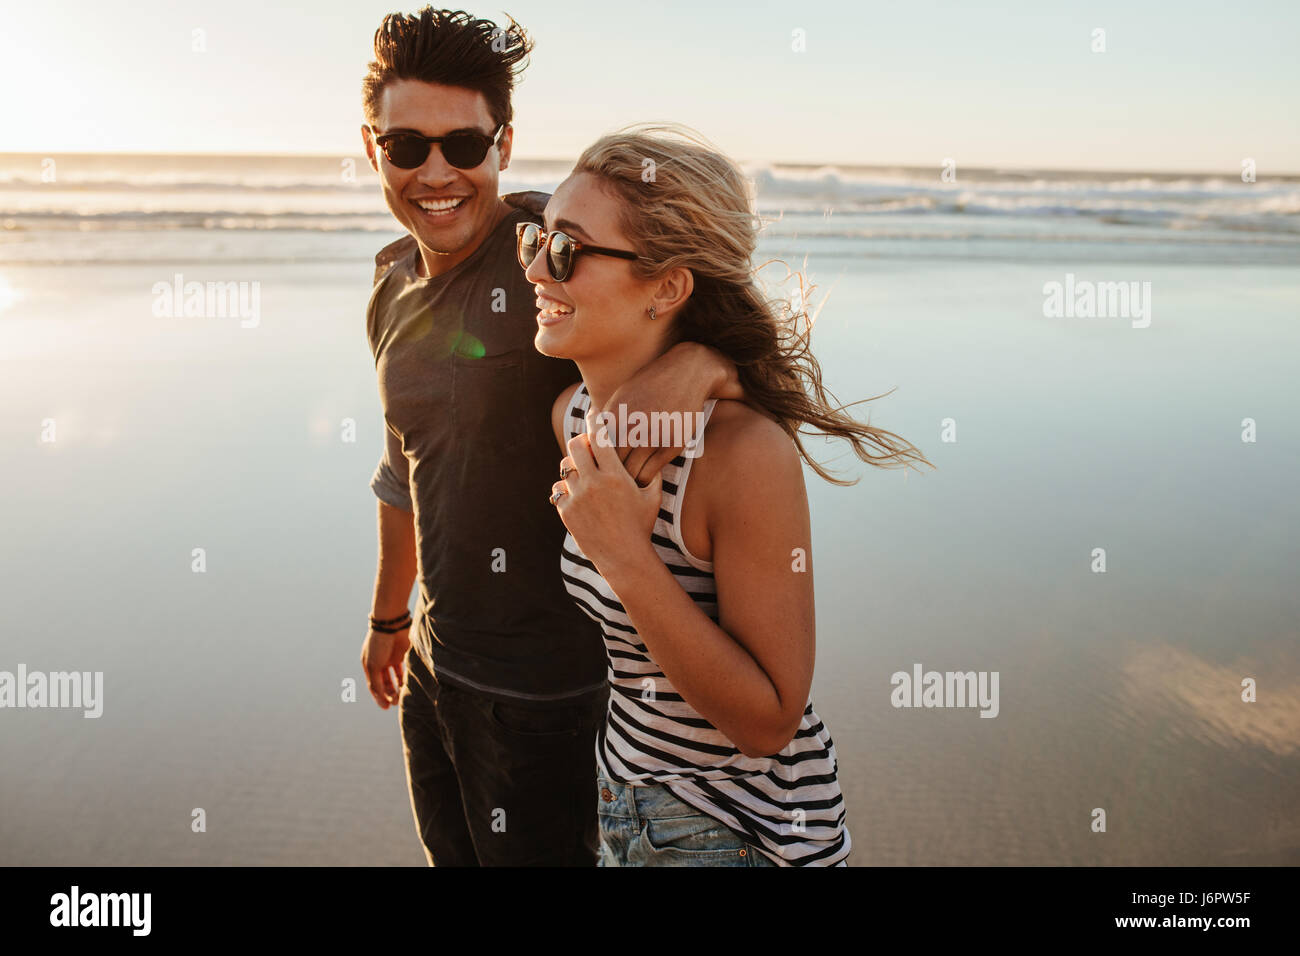 Portrait of romantic young couple walking on sea shore. Man and woman on beach holiday during summertime. - Stock Image